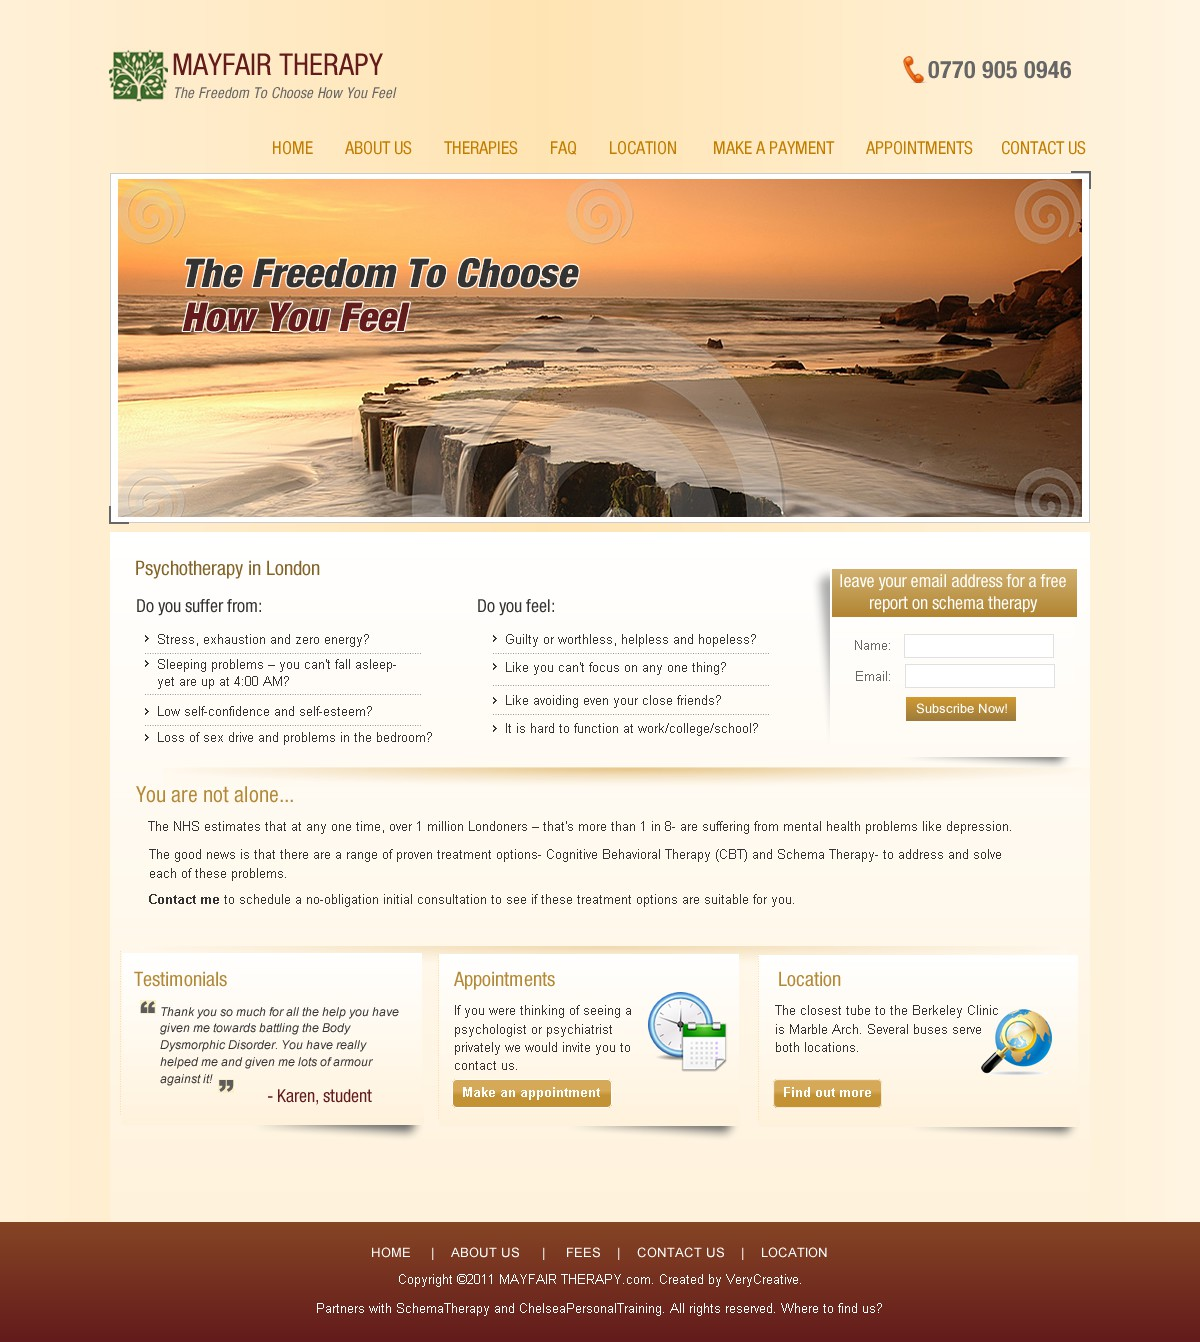 Mayfairtherapy needs a new website design